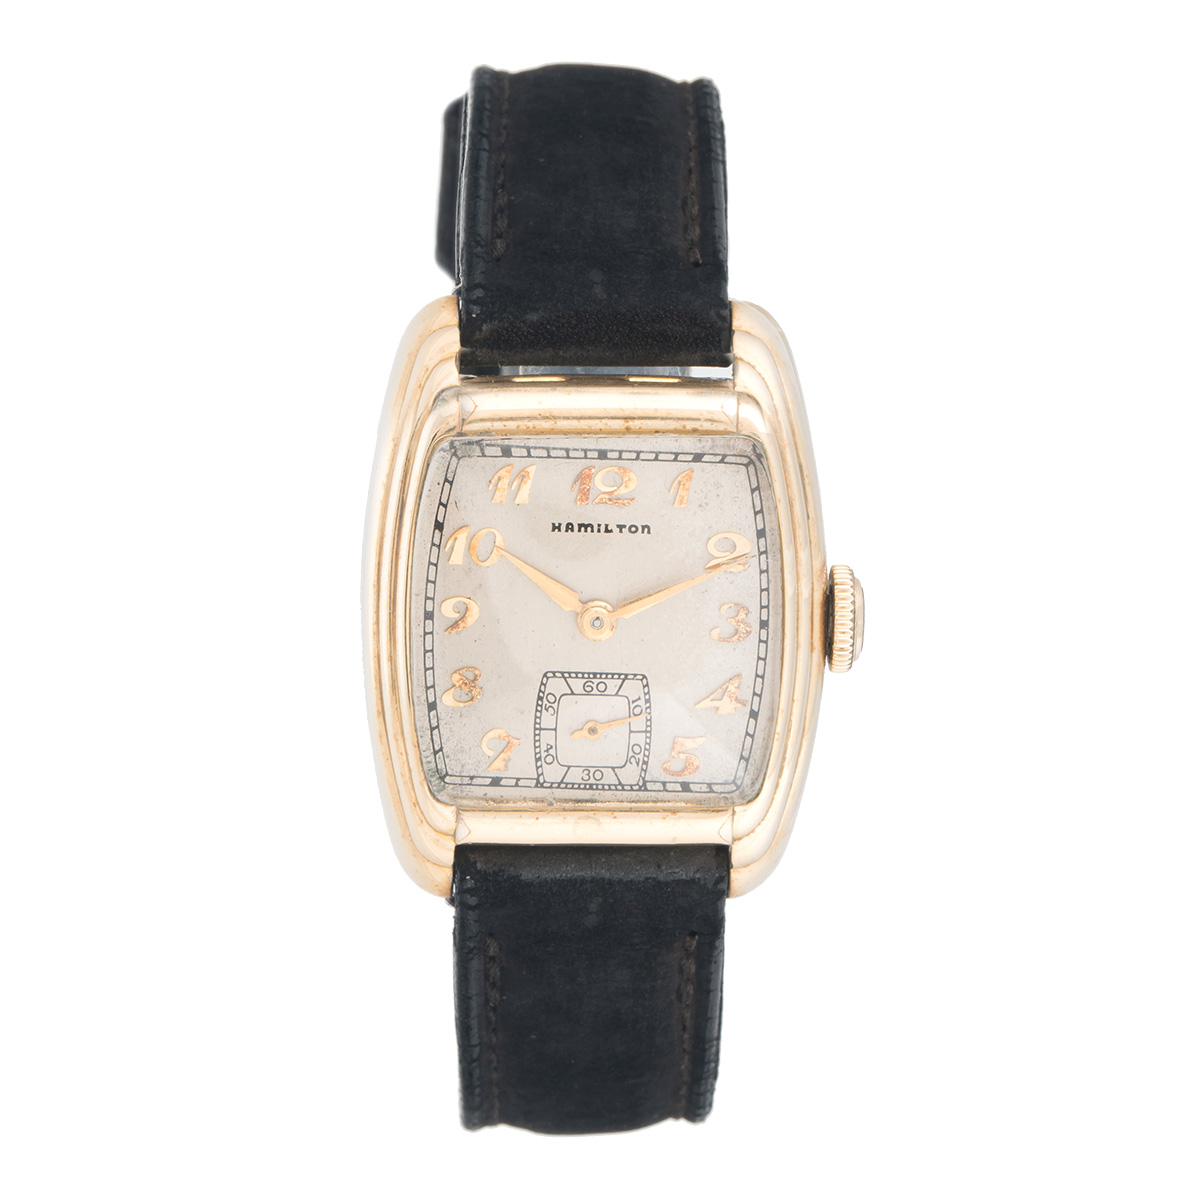 "Image of ""Hamilton 10K Gold Filled Manual Wind 29mm Unisex Dress Watch 1937"""